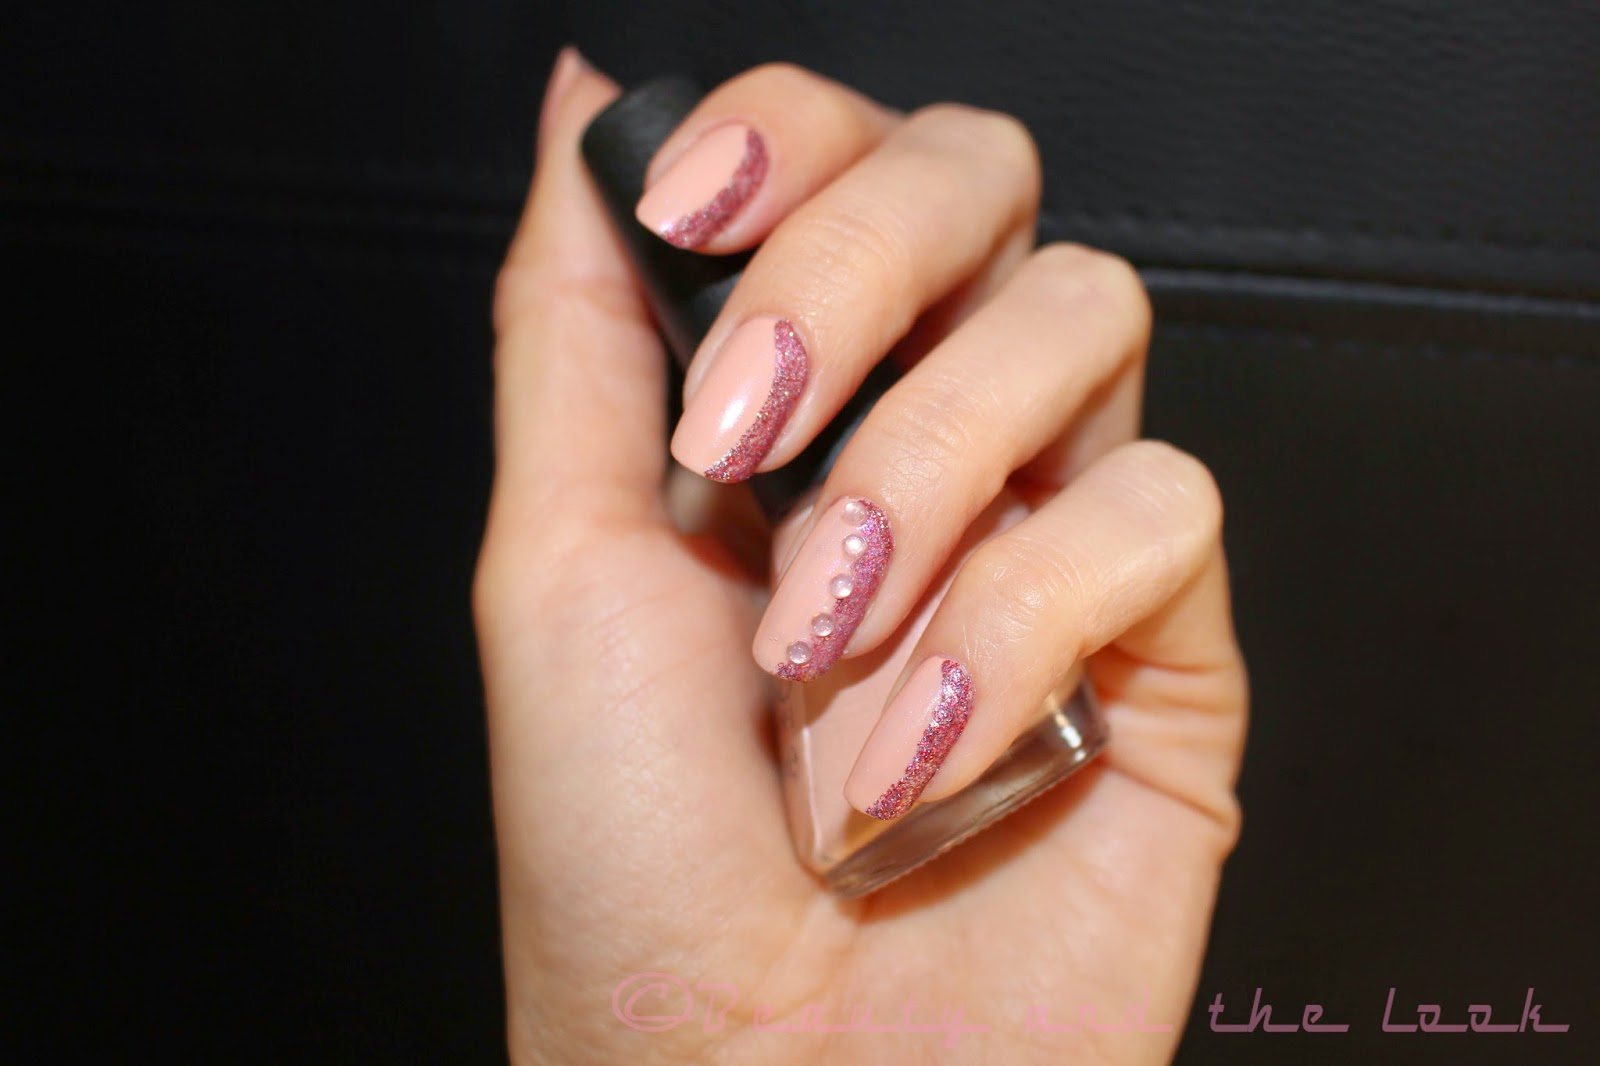 Simple Nail Designs For Prom: Simple silver glitter tip prom nails.